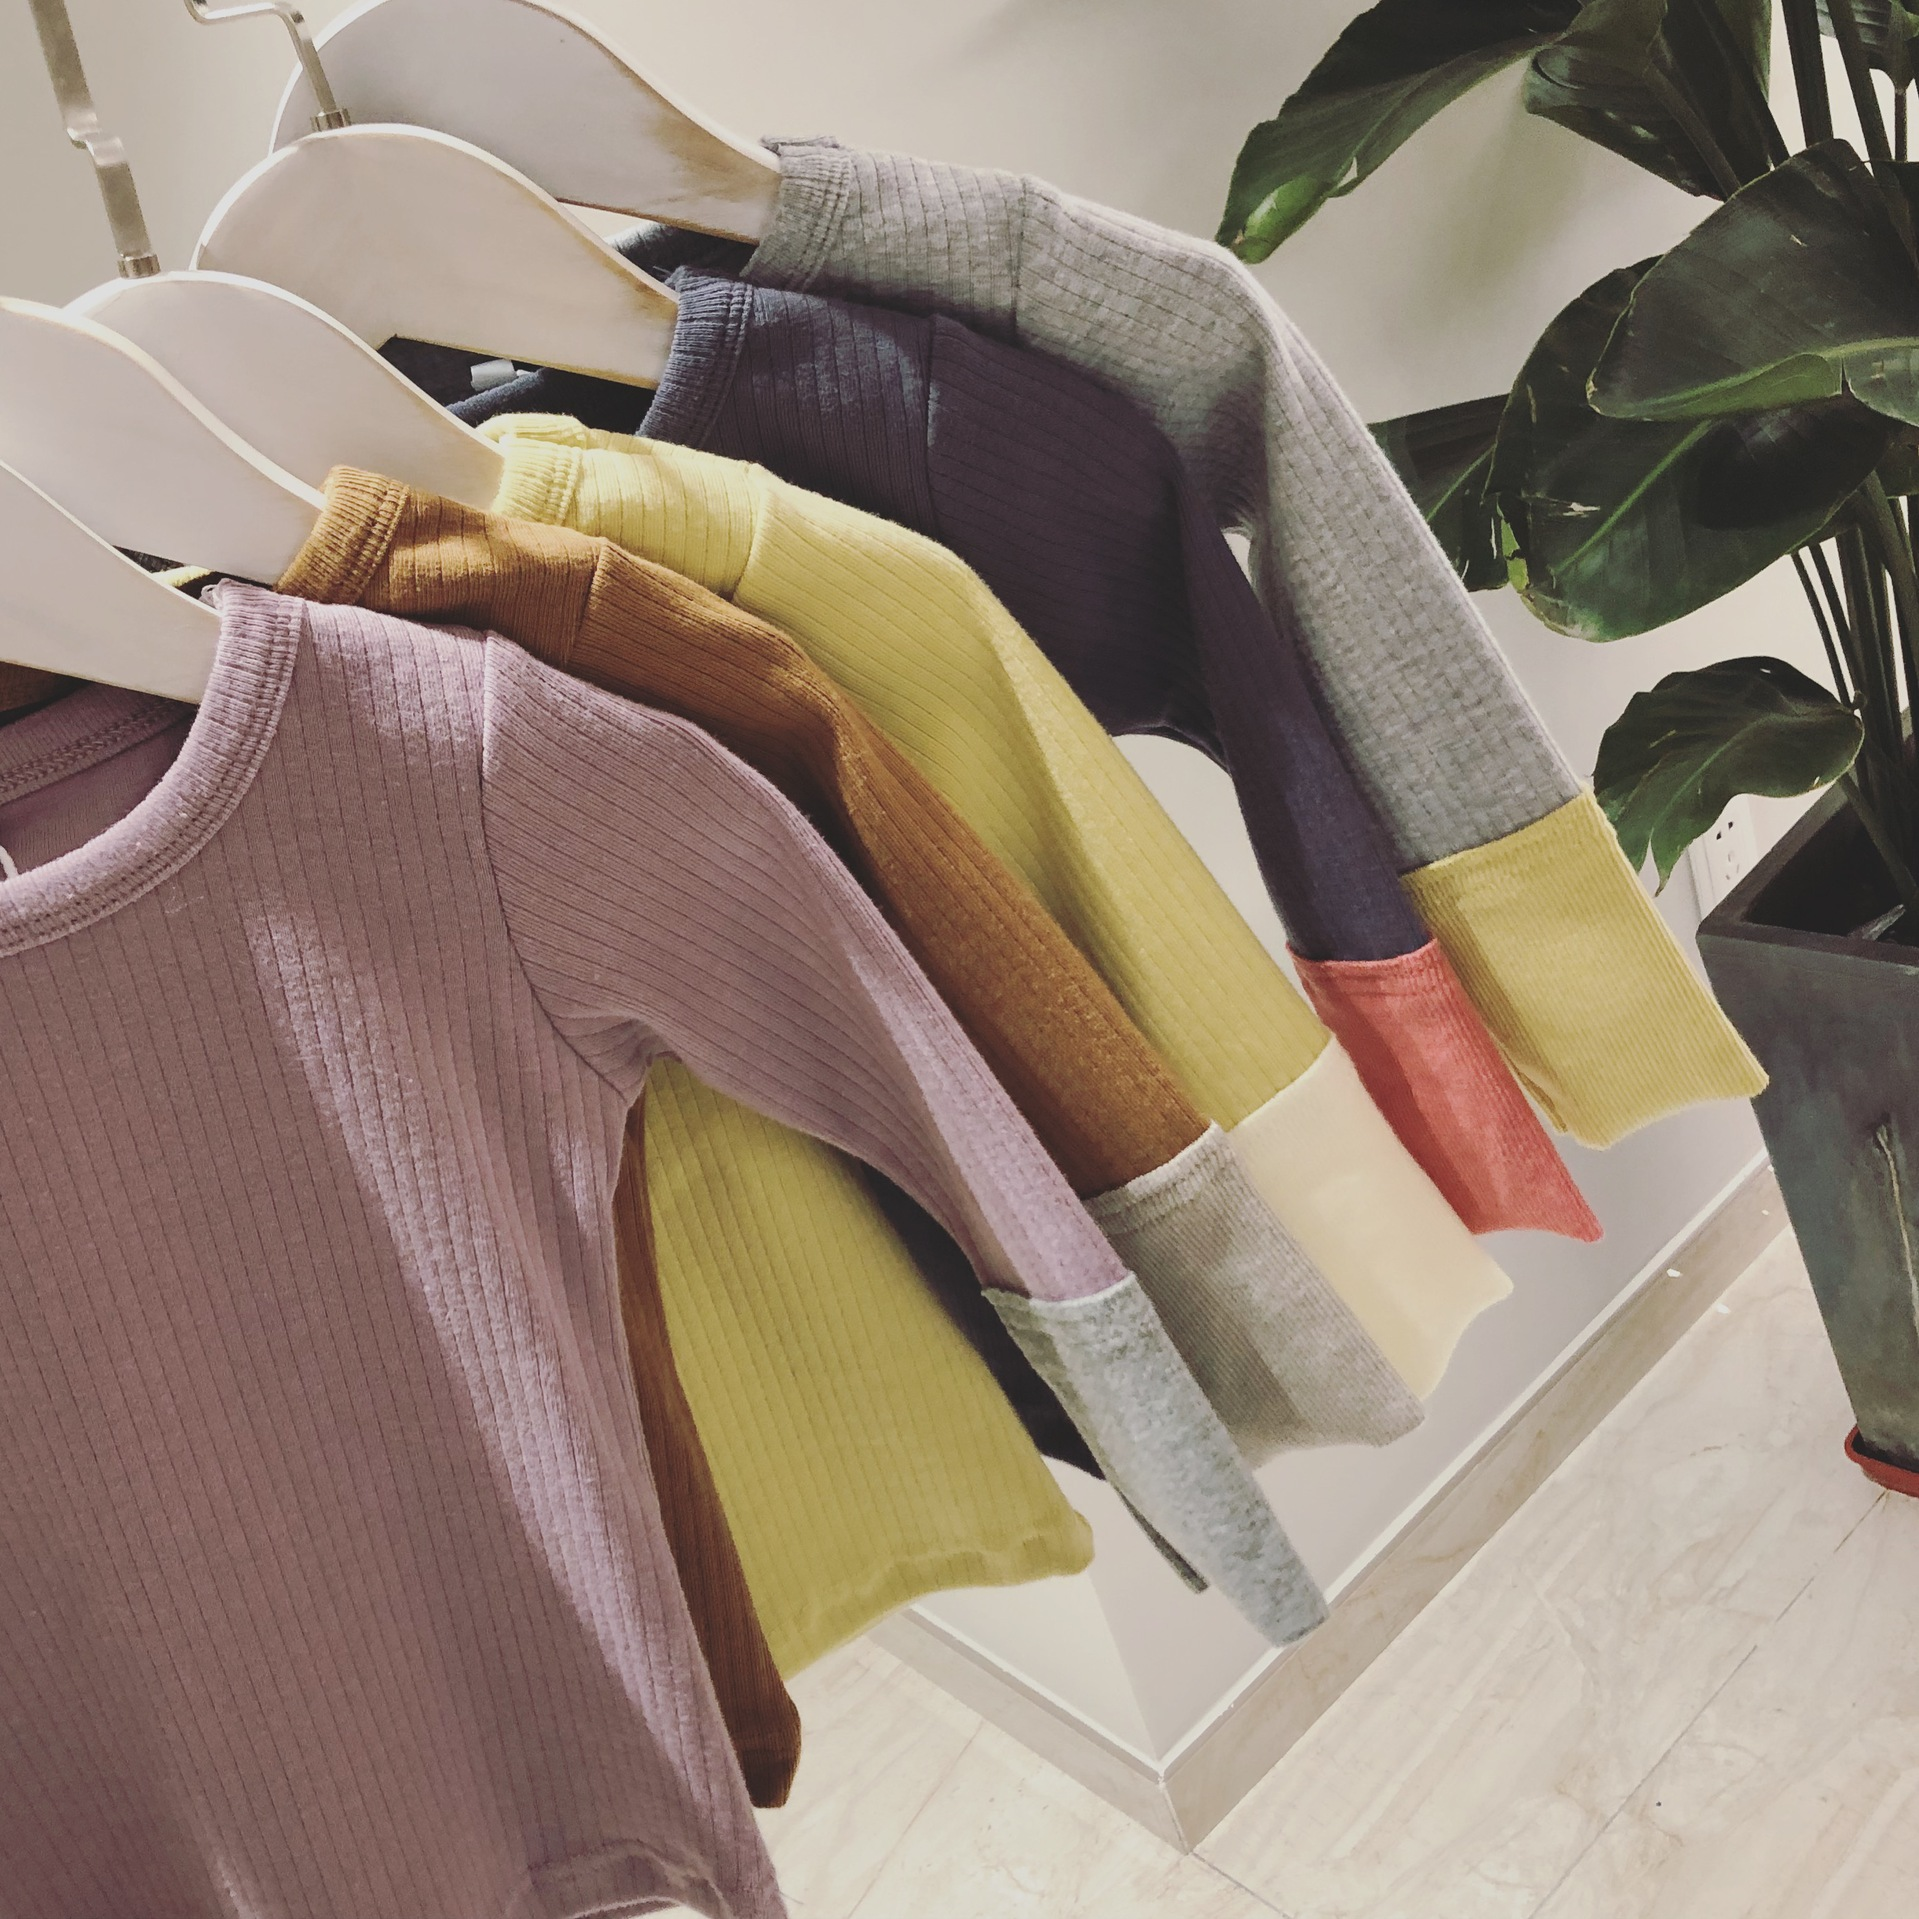 Kids Blouses 2018 Autumn New Color Matching Pits Shirt Round Neck Long Long Sleeve Korean Style Shirt Both Boys And Girls Wear